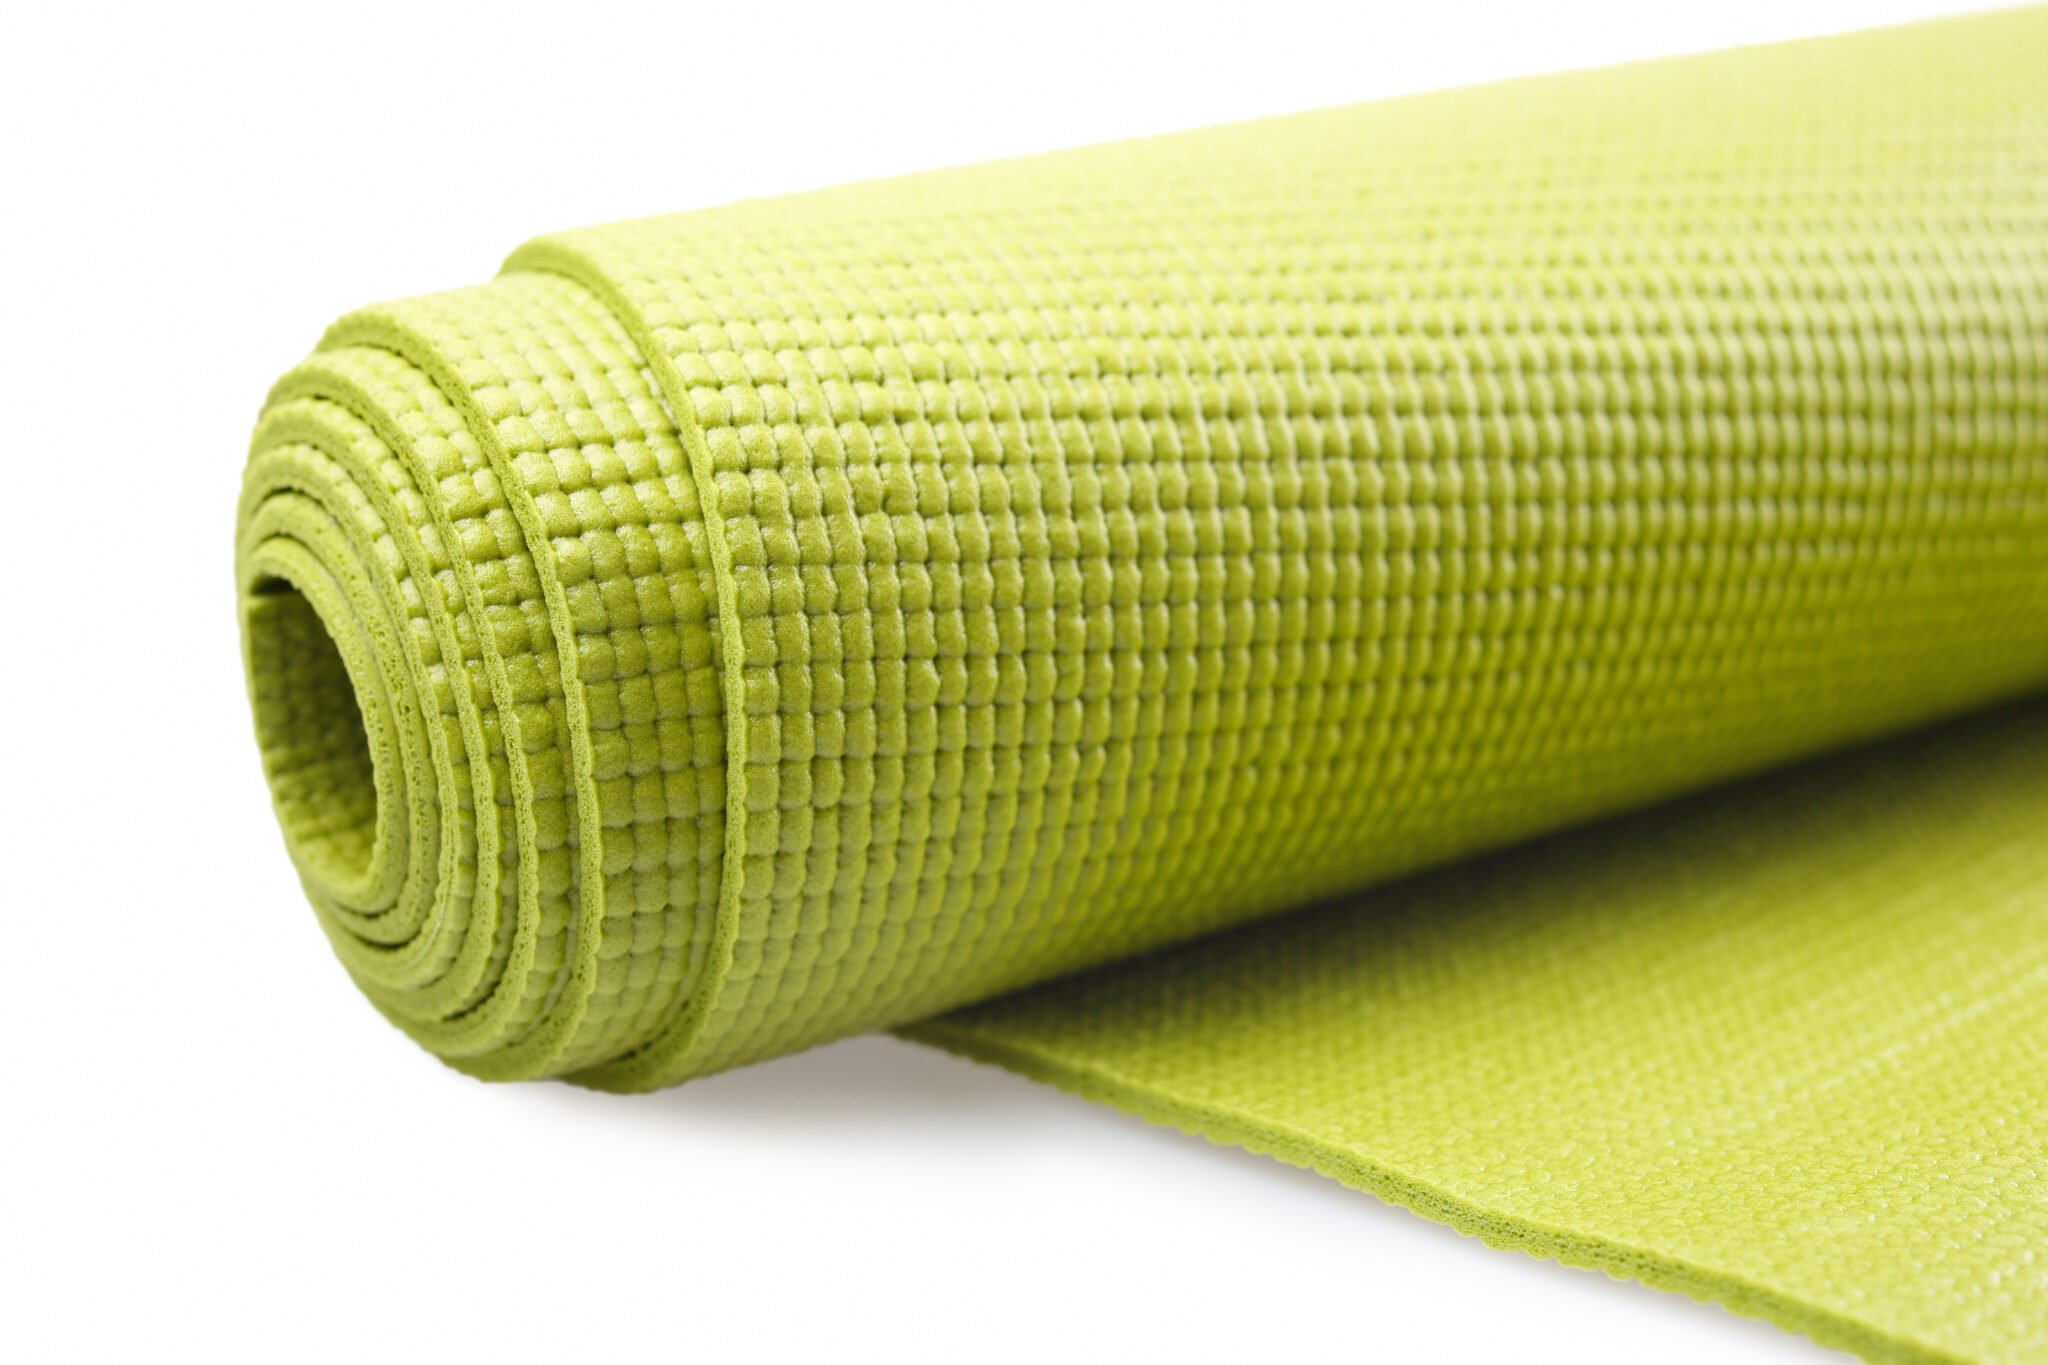 You can recognize a PVC yoga mat by its bumpy surface.